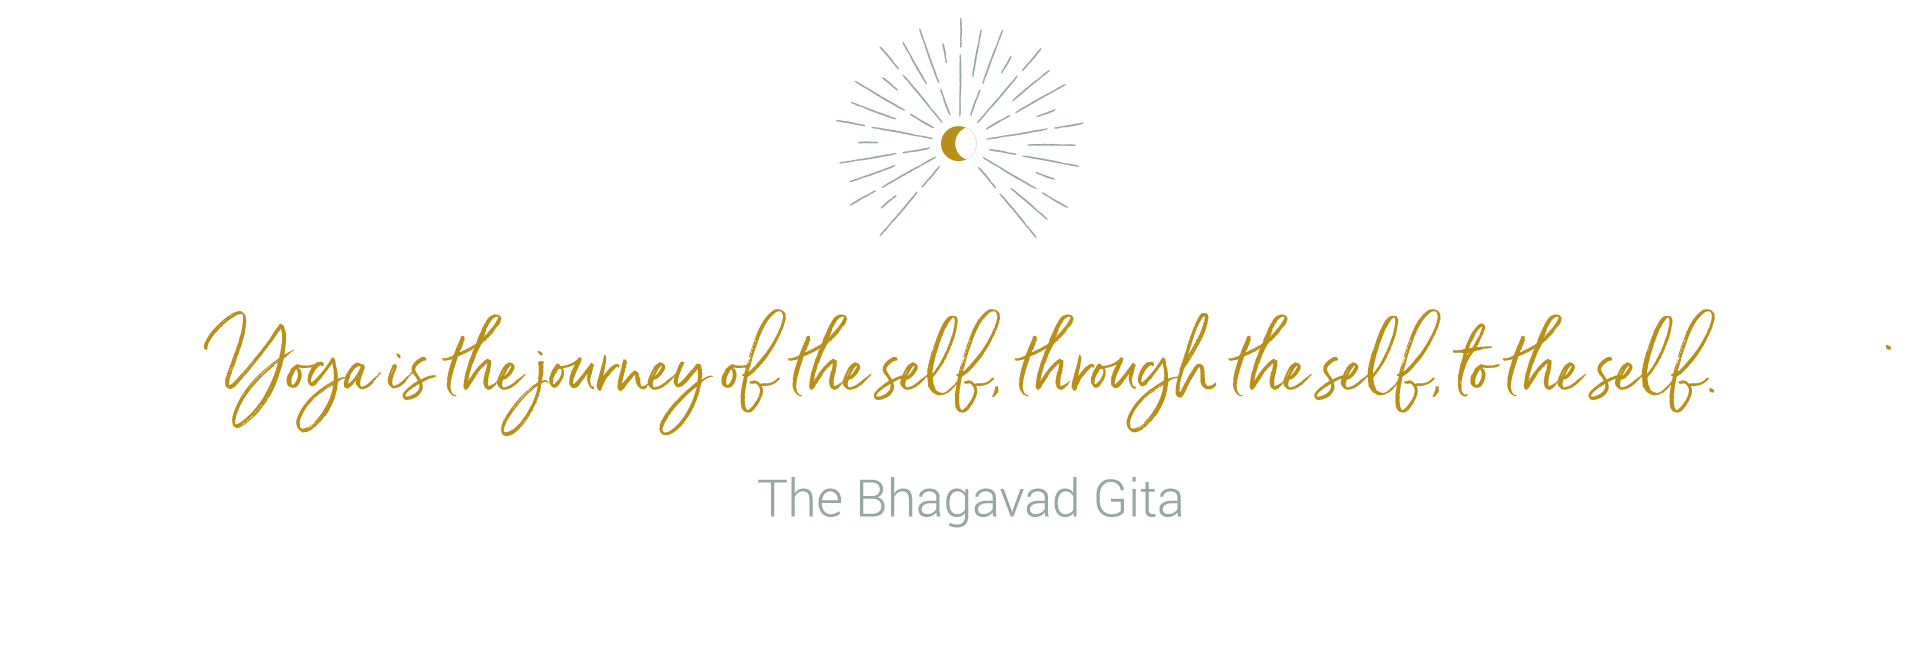 Yoga is the journey of the self, through the self, to the self. The Bhagavad Gita - Niyama